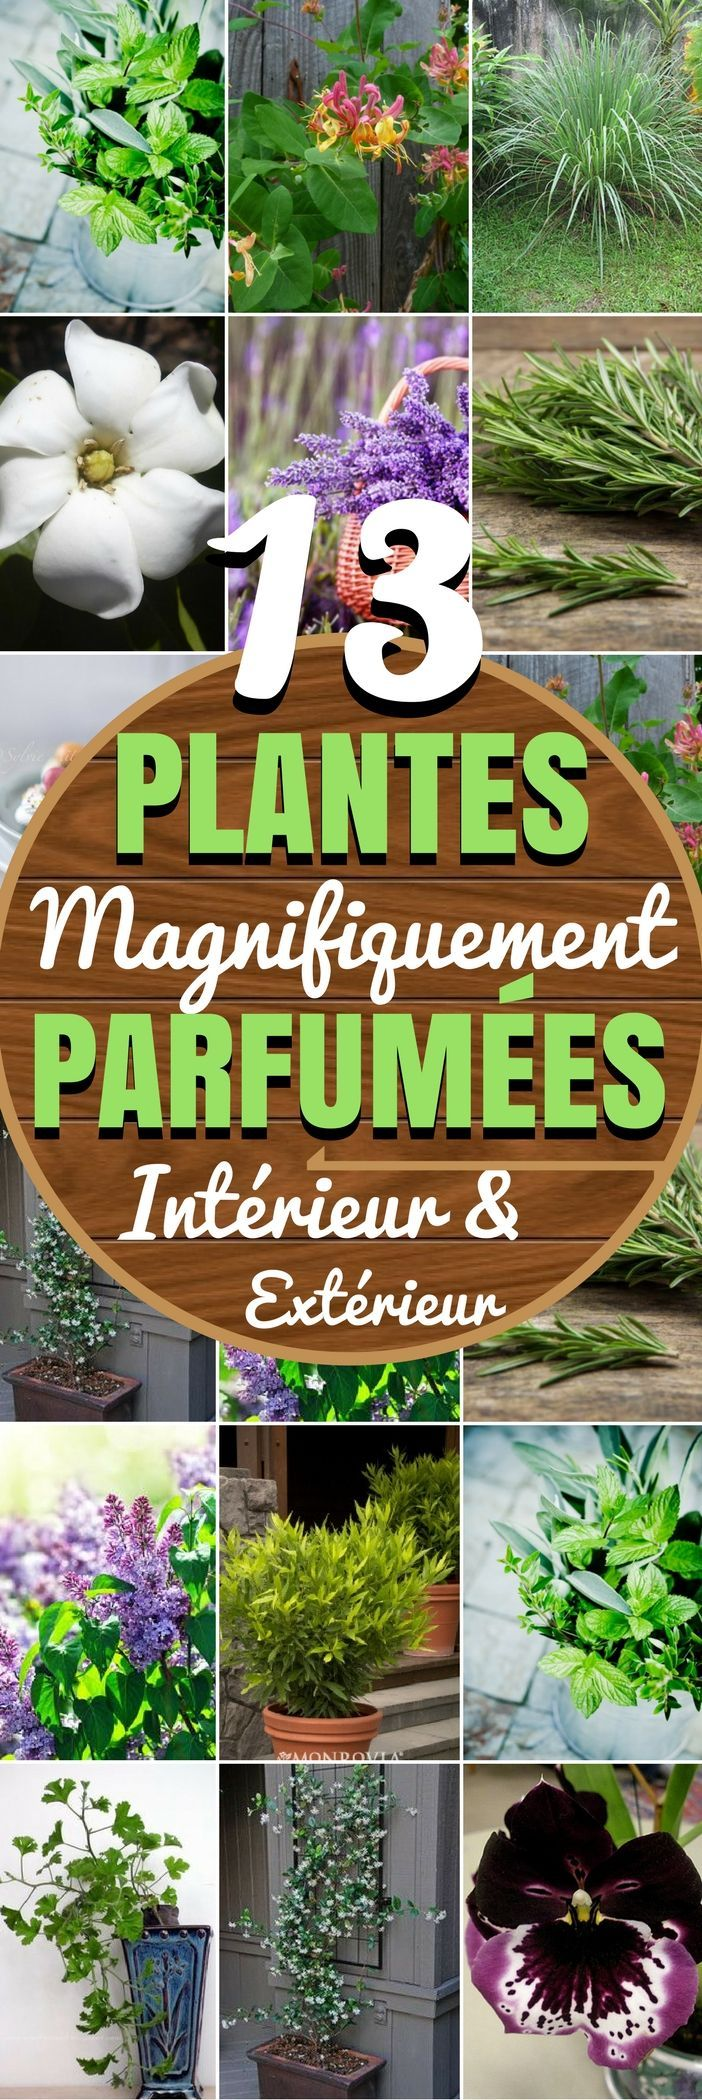 13 plantes magnifiquement parfum es int rieur ext rieur astuces jardin plantes animaux. Black Bedroom Furniture Sets. Home Design Ideas